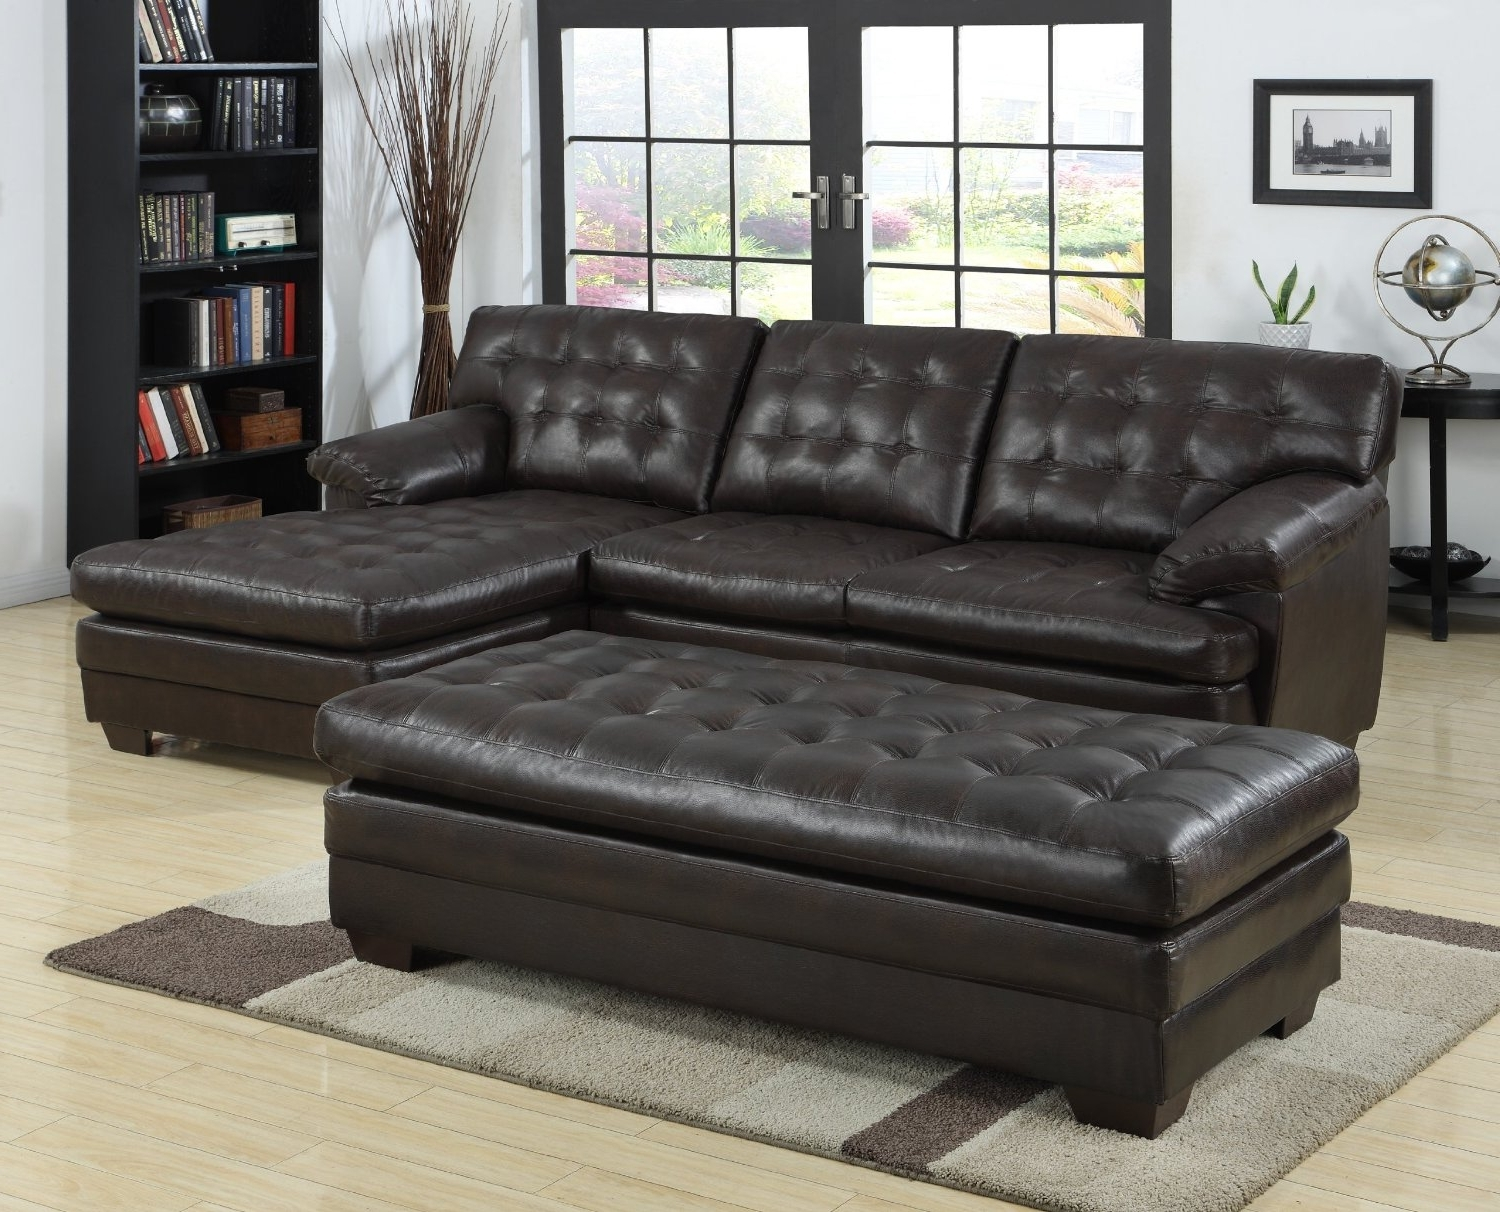 Well Liked Black Leather Sectional With Chaise Sectional Sofas With Recliners Pertaining To Leather Sectionals With Chaise Lounge (View 15 of 15)